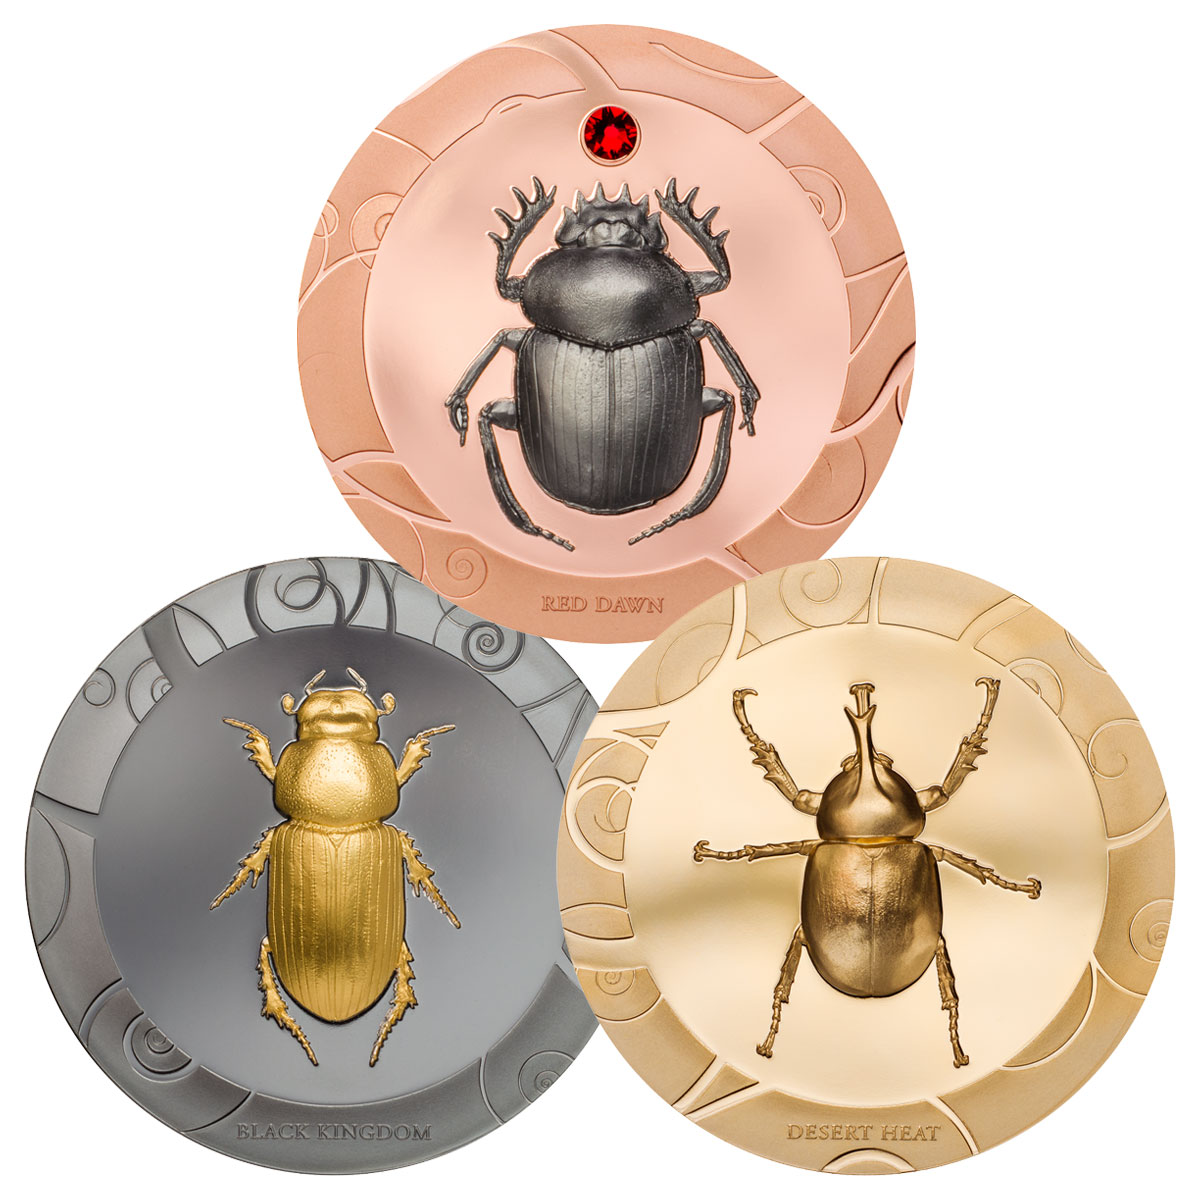 2017 Cook Islands Scarab Beetle Selection 3-Coin Set I High Relief 1 oz Silver Gilt Proof $5 Coin GEM Proof OGP